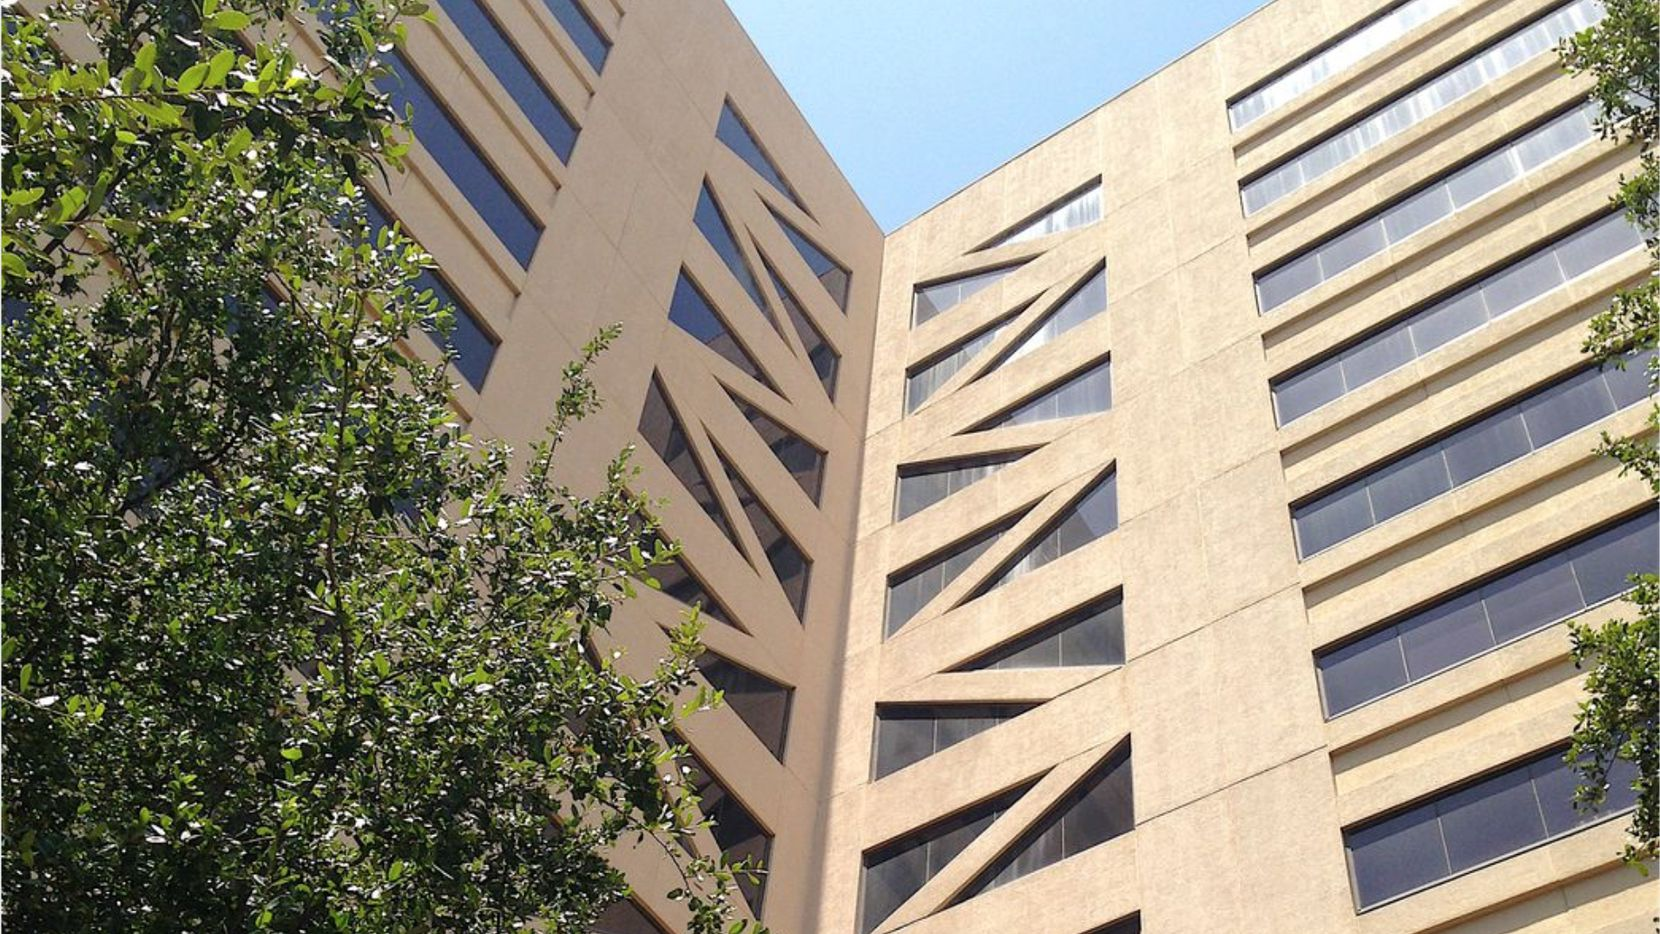 The Crossings office buildings are on LBJ Freeway east of the Dallas Galleria.